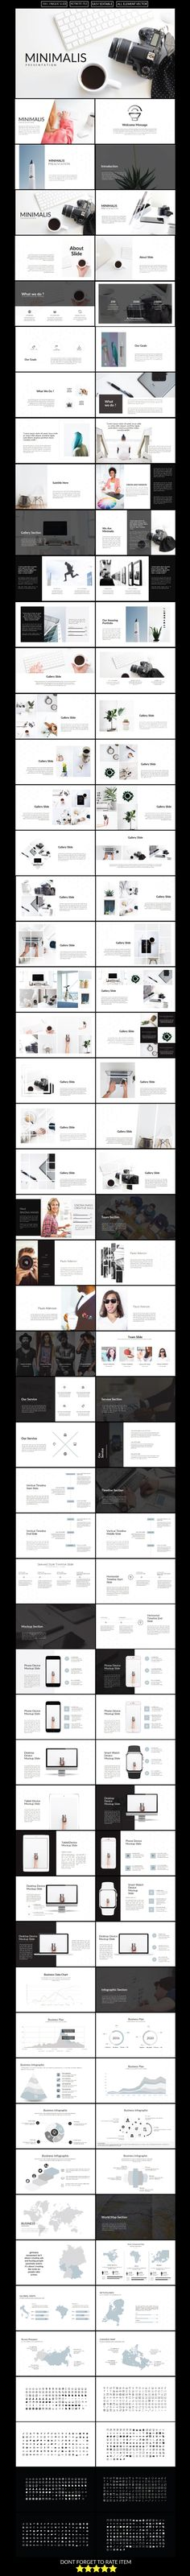 Minimalis Multipurpose Keynote Presentation Template